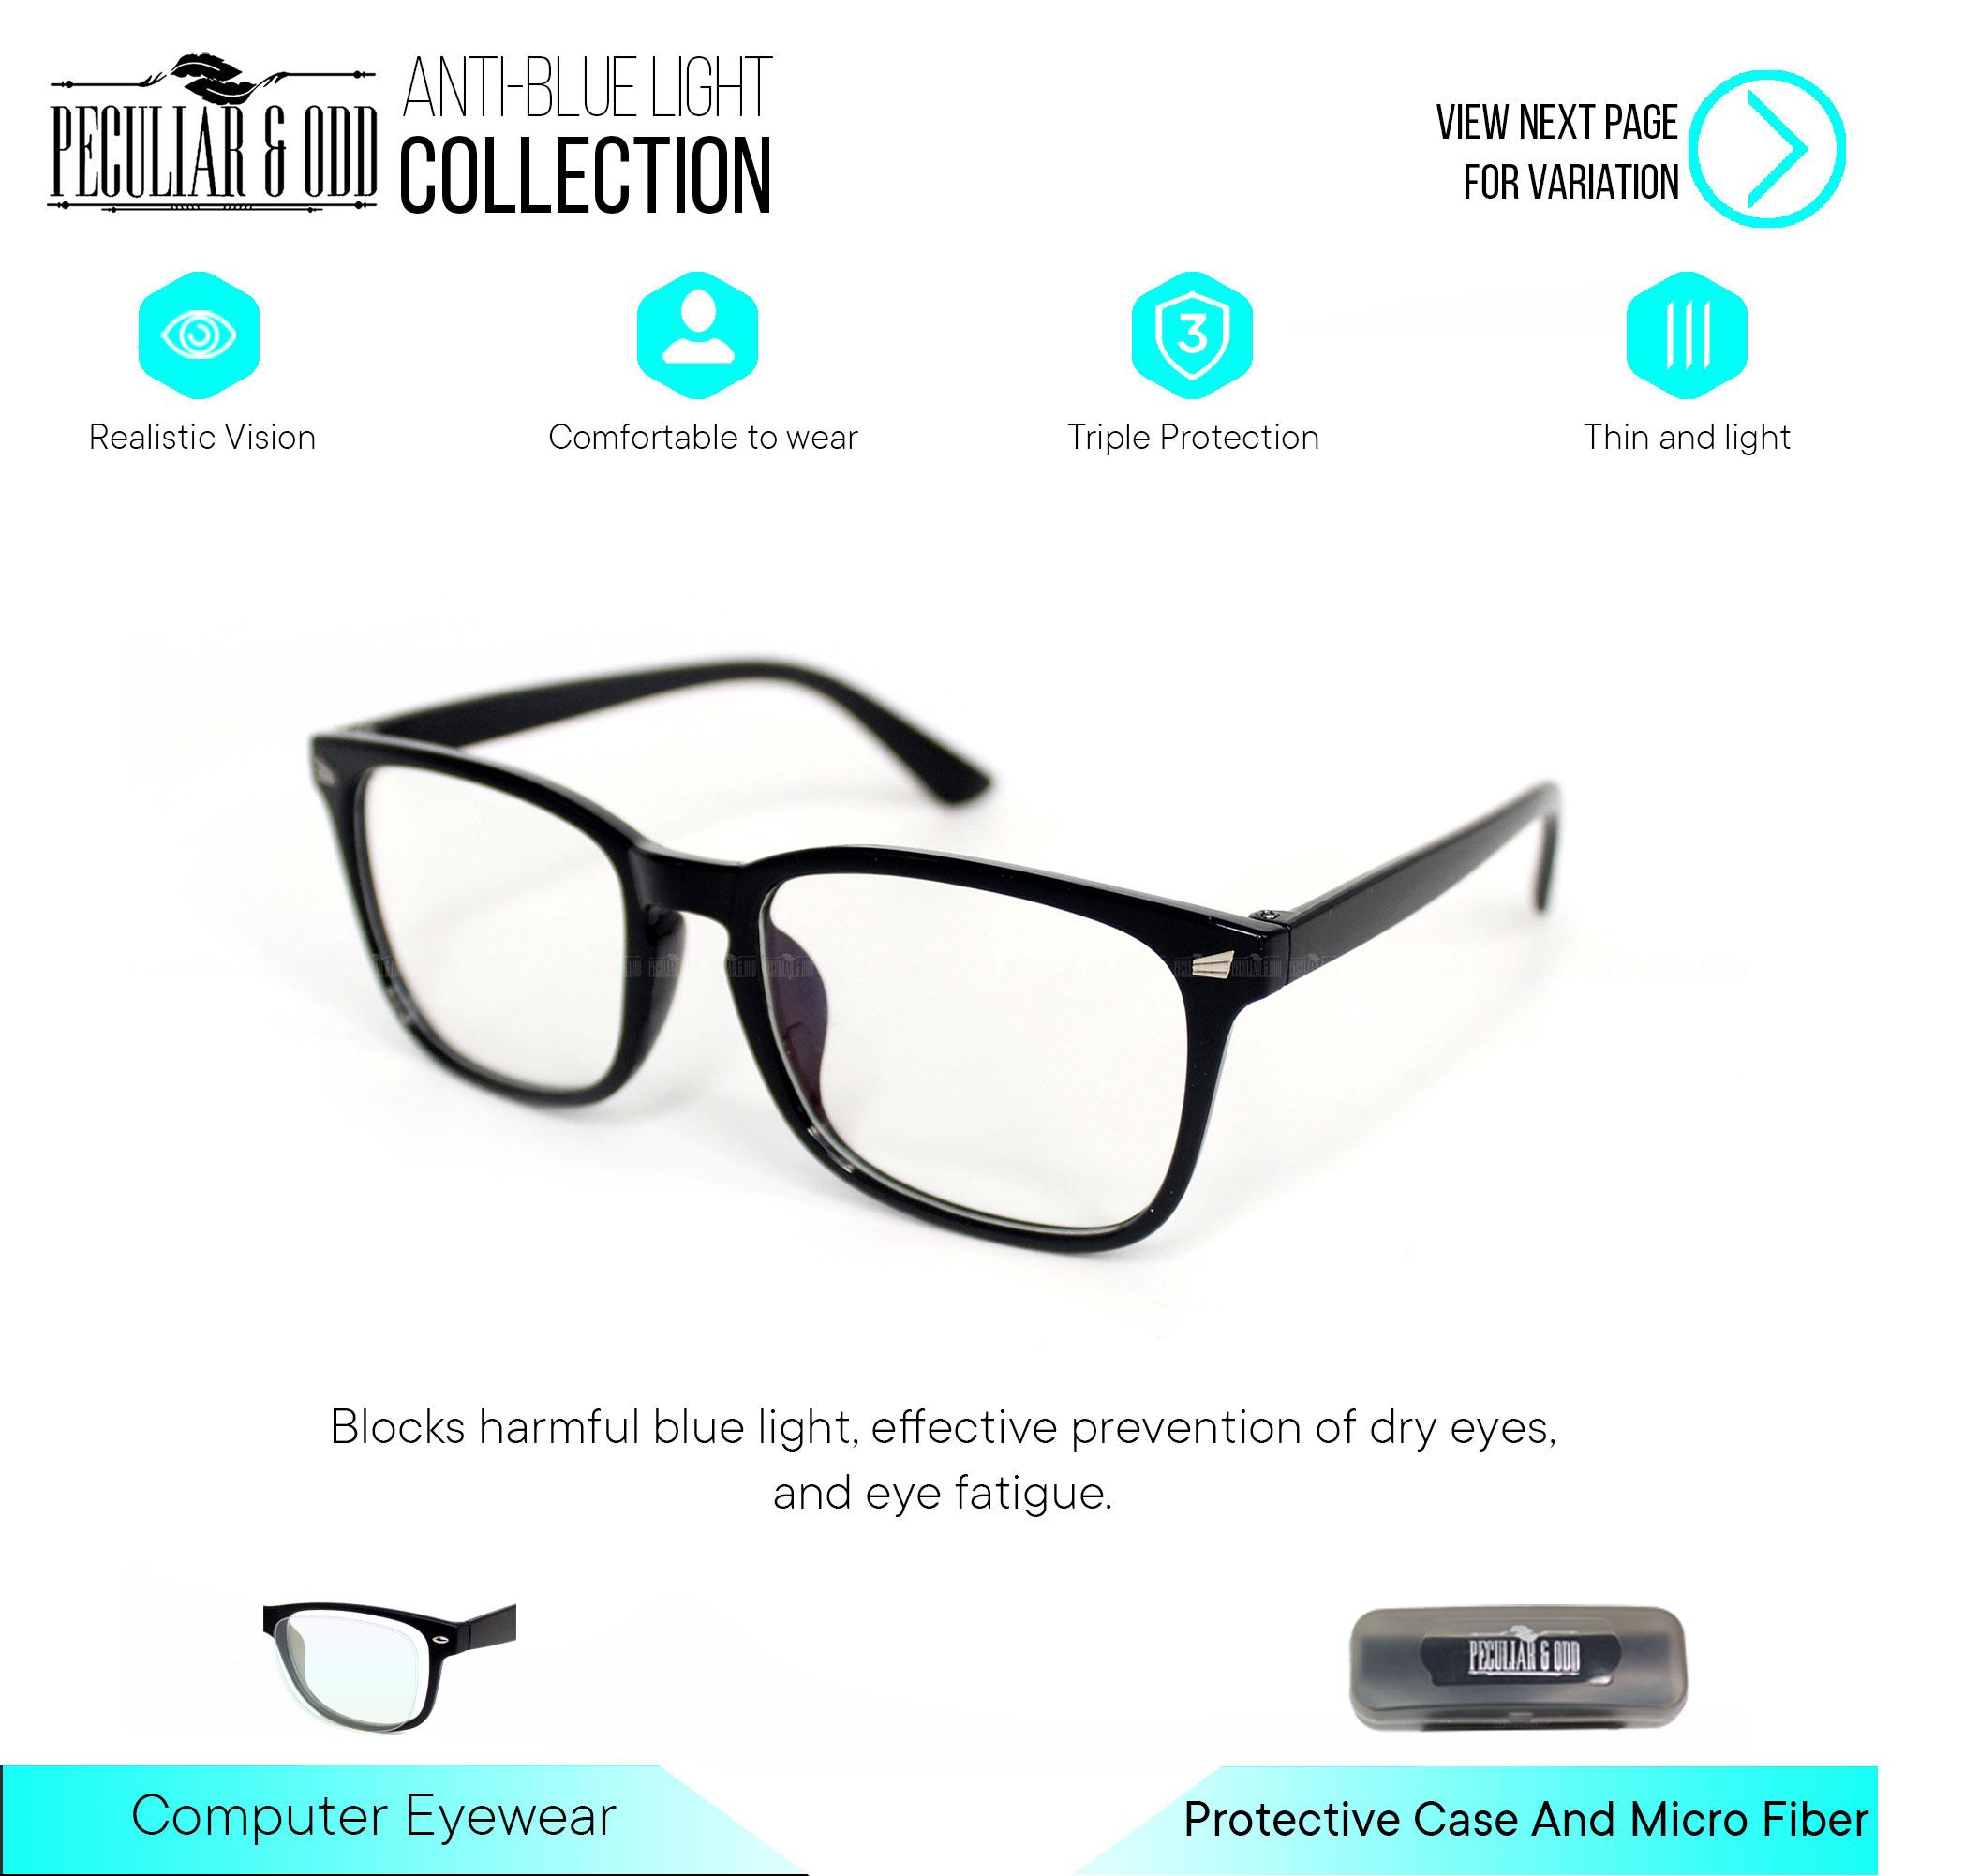 5258a85233097 Peculiar Optical Square 15969 BlackClear Anti Radiation Blue Lens Computer  Eyeglass Replaceable Lenses Unisex Eyewear 1